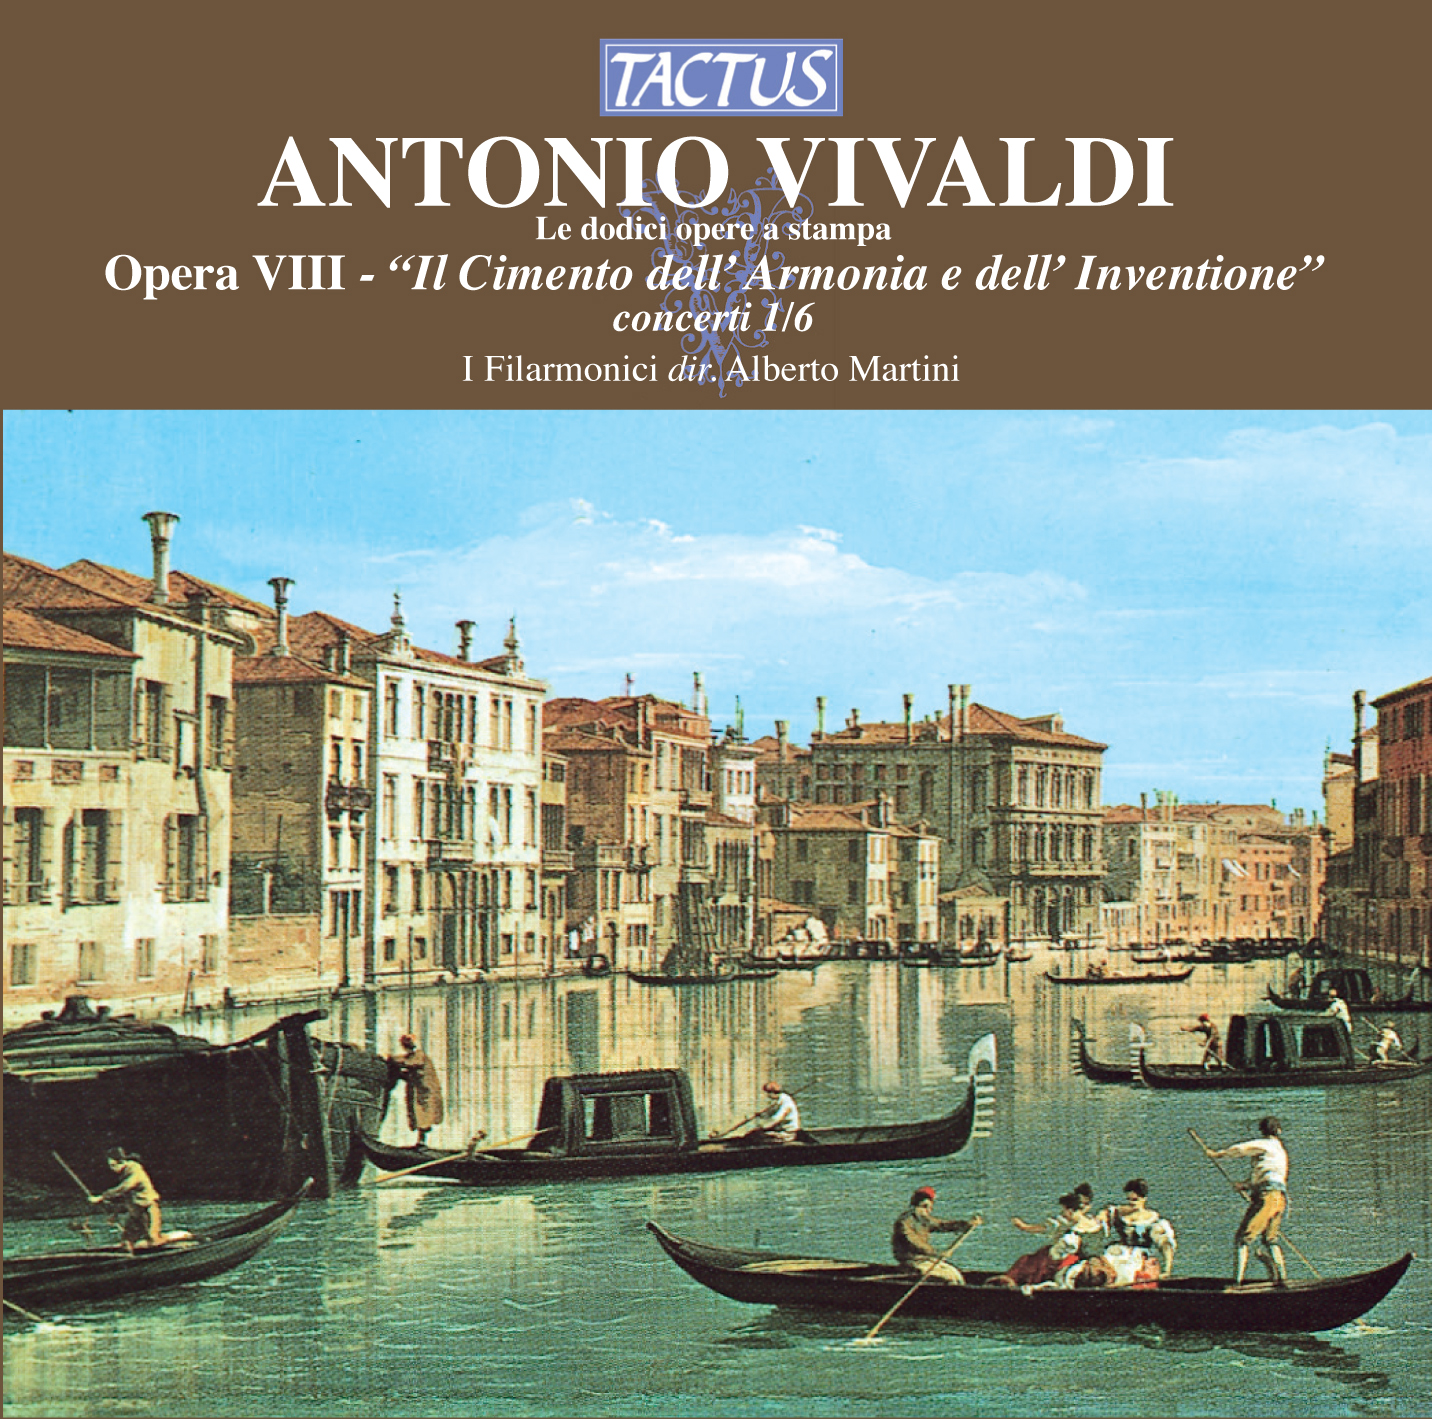 "The 4 Seasons, Violin Concerto in E Major, Op. 8, No. 1, RV 269, ""Spring"", The 4 Seasons, Violin Concerto in E Major, Op. 8, No. 1, RV 269, ""Spring"": III. Danza pastorale. Allegro"